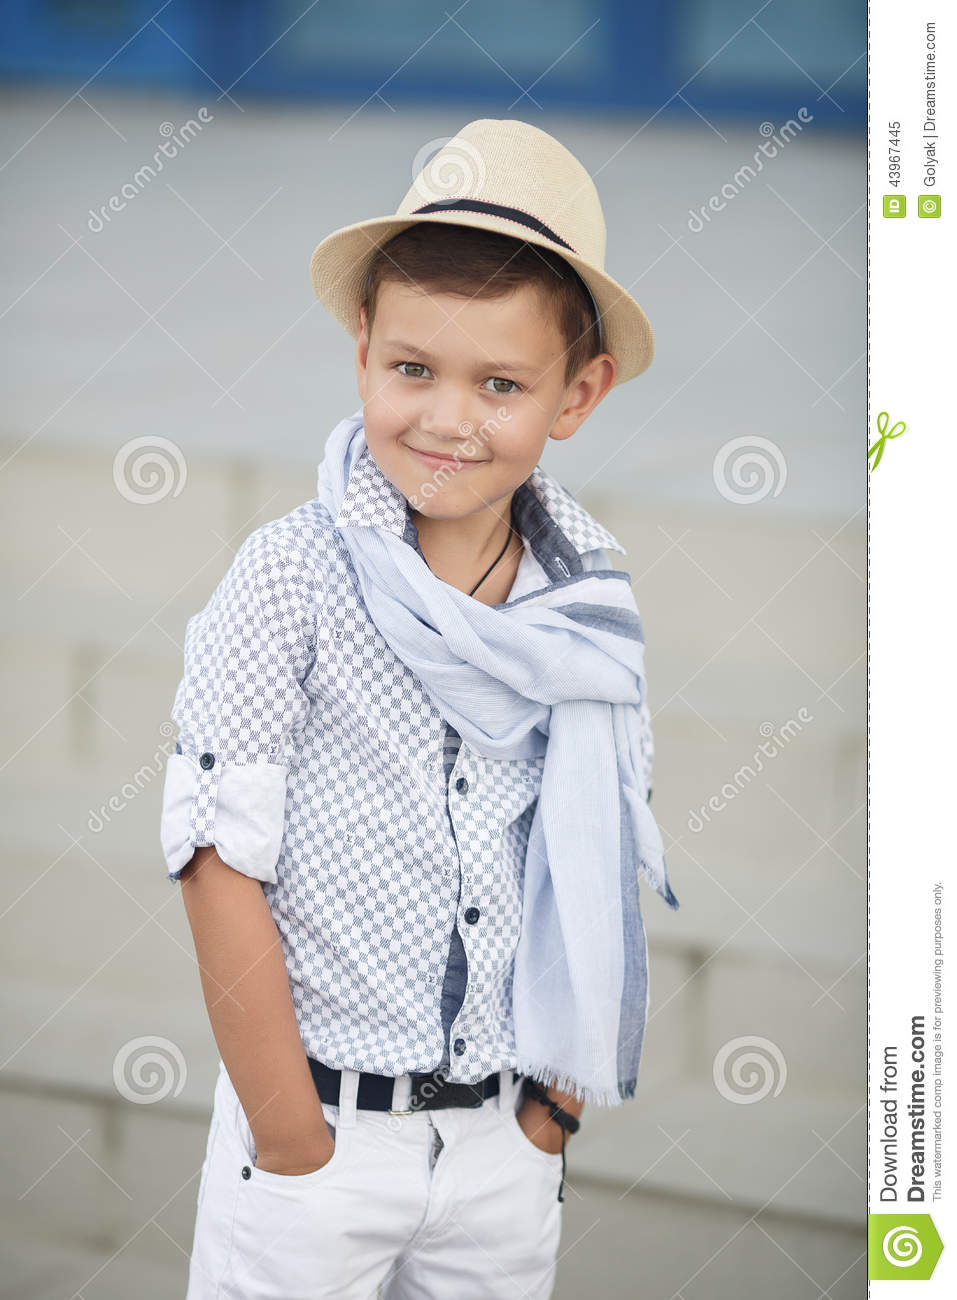 cute boy happy kid outdoors stock image - image of bright, laughing